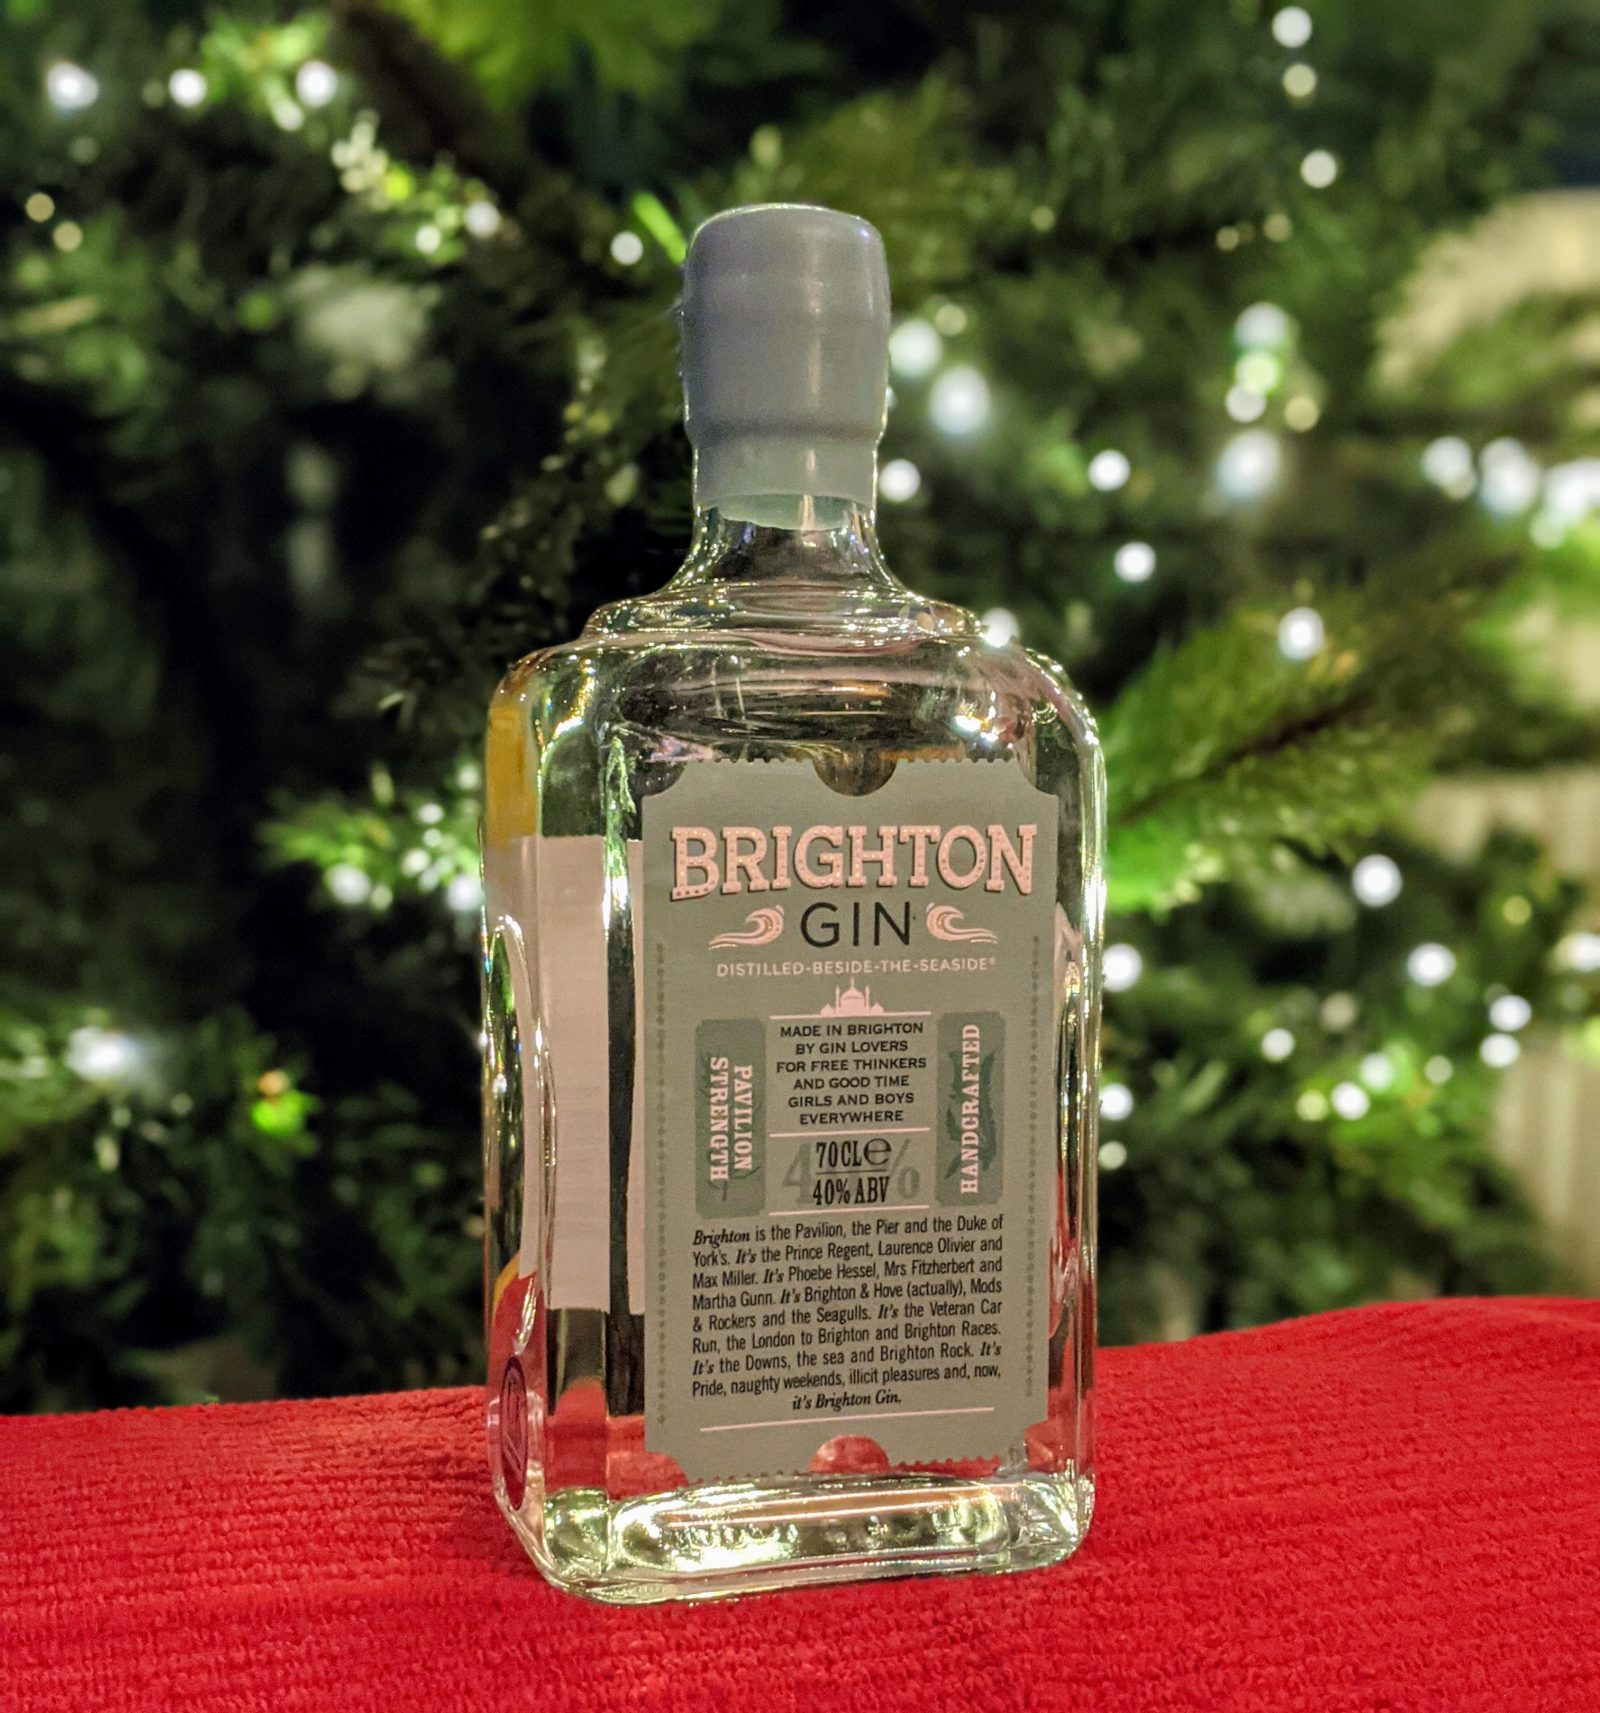 A bottle of Brighton gin in front of a lit Christmas tree